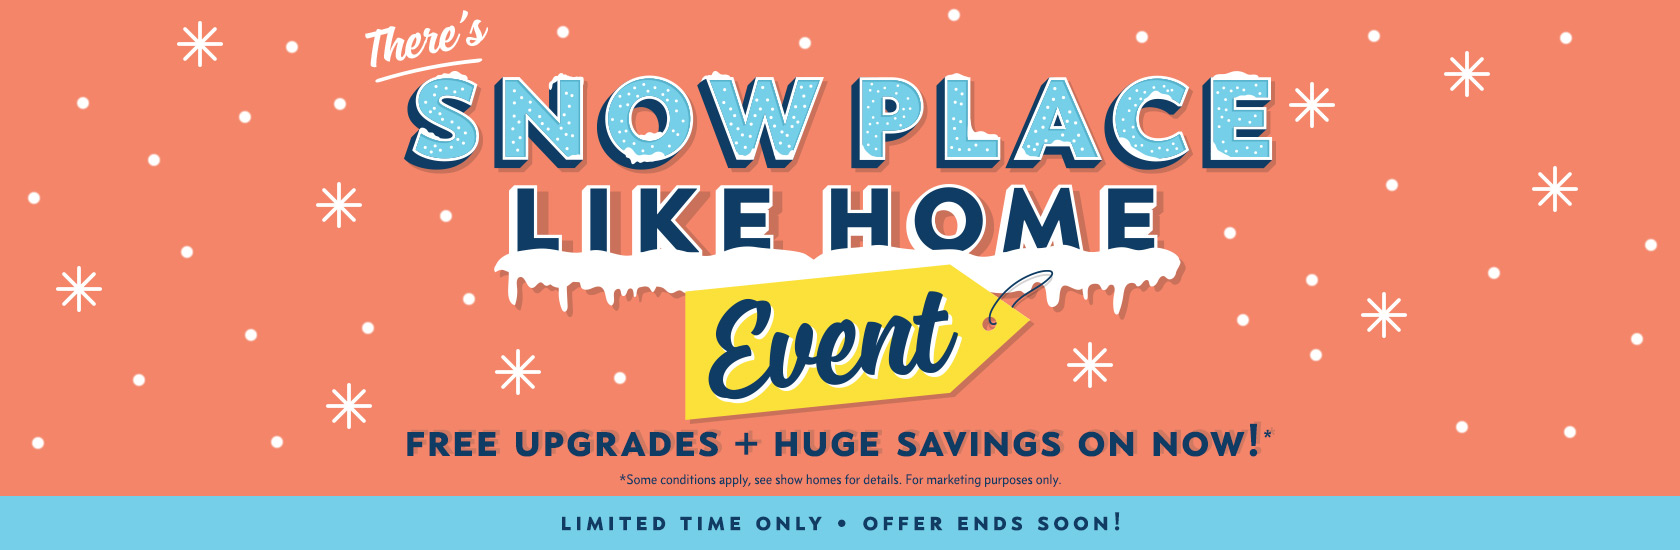 Snow Place Like Home Promo graphic